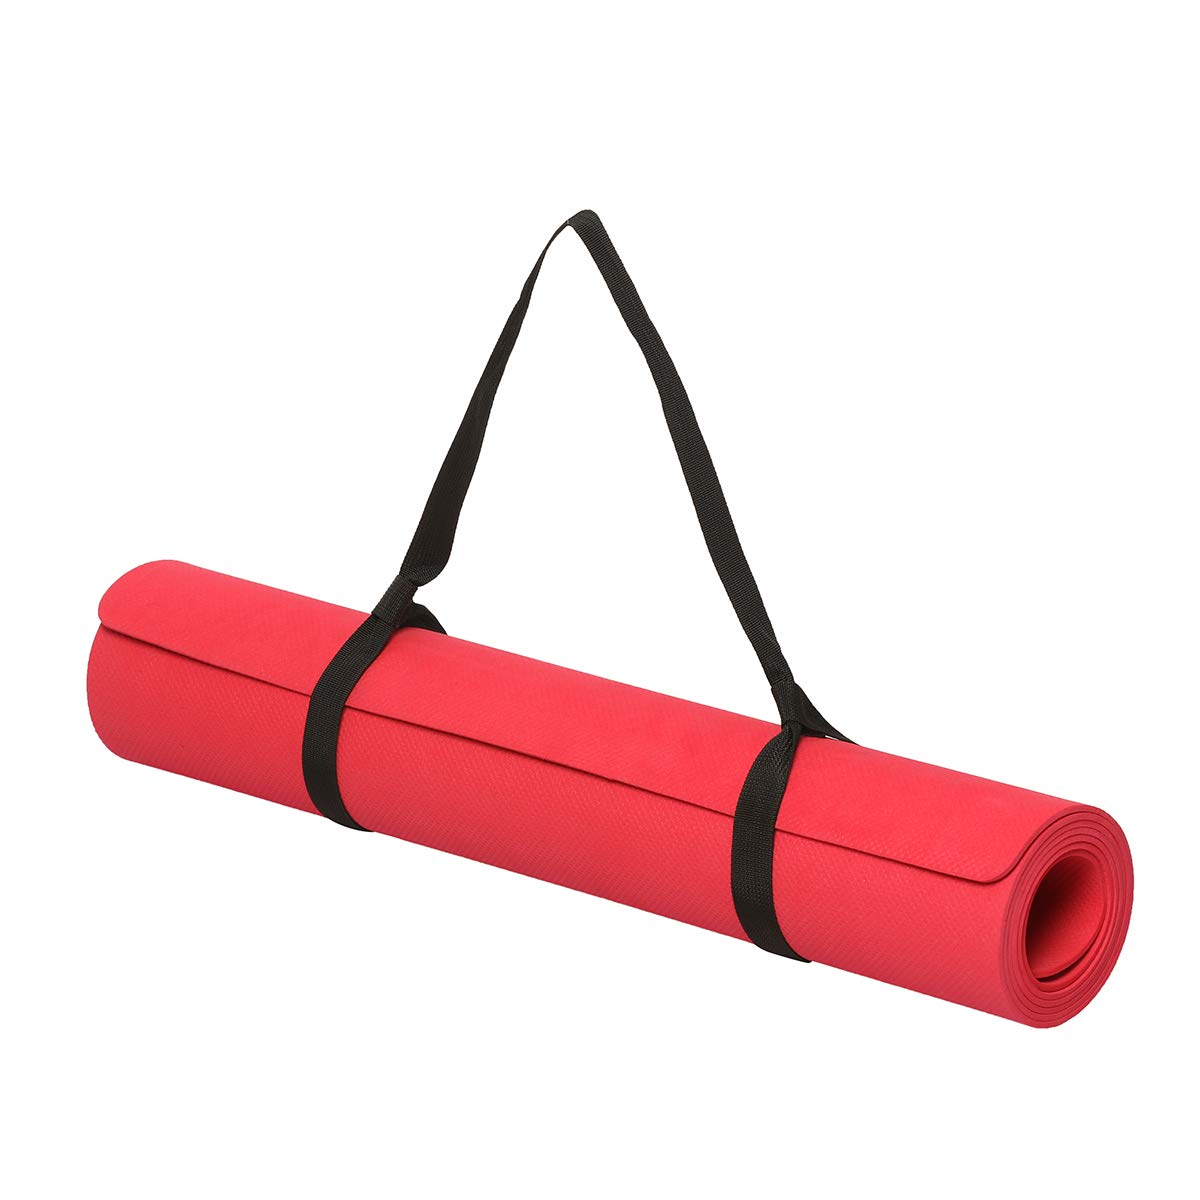 Lifelong 4 mm Thick and Anti-Skid Yoga Exercise Mat with Carrying Strap for Gym Workout